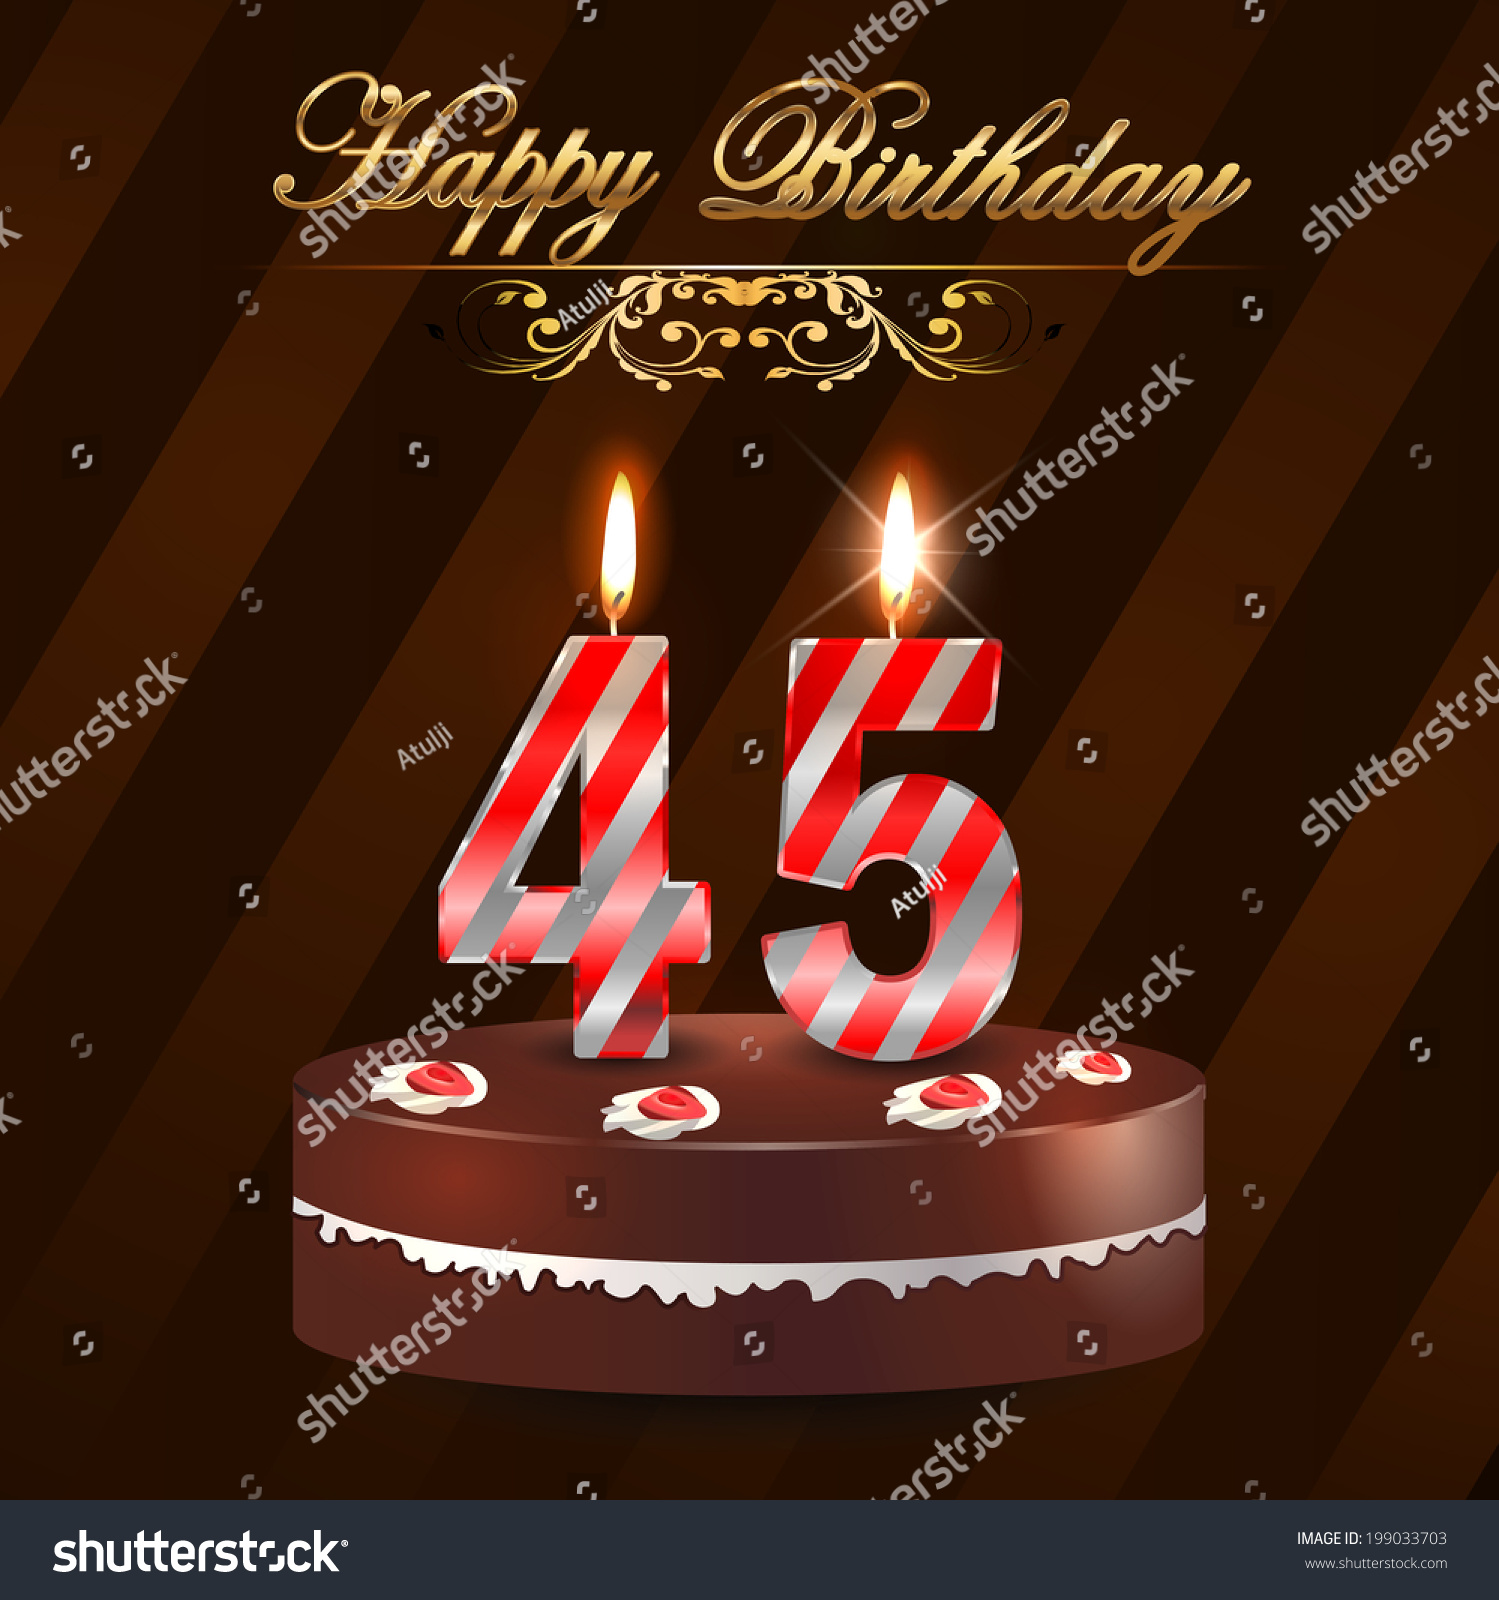 45 Year Happy Birthday Card With Cake… Stock Photo